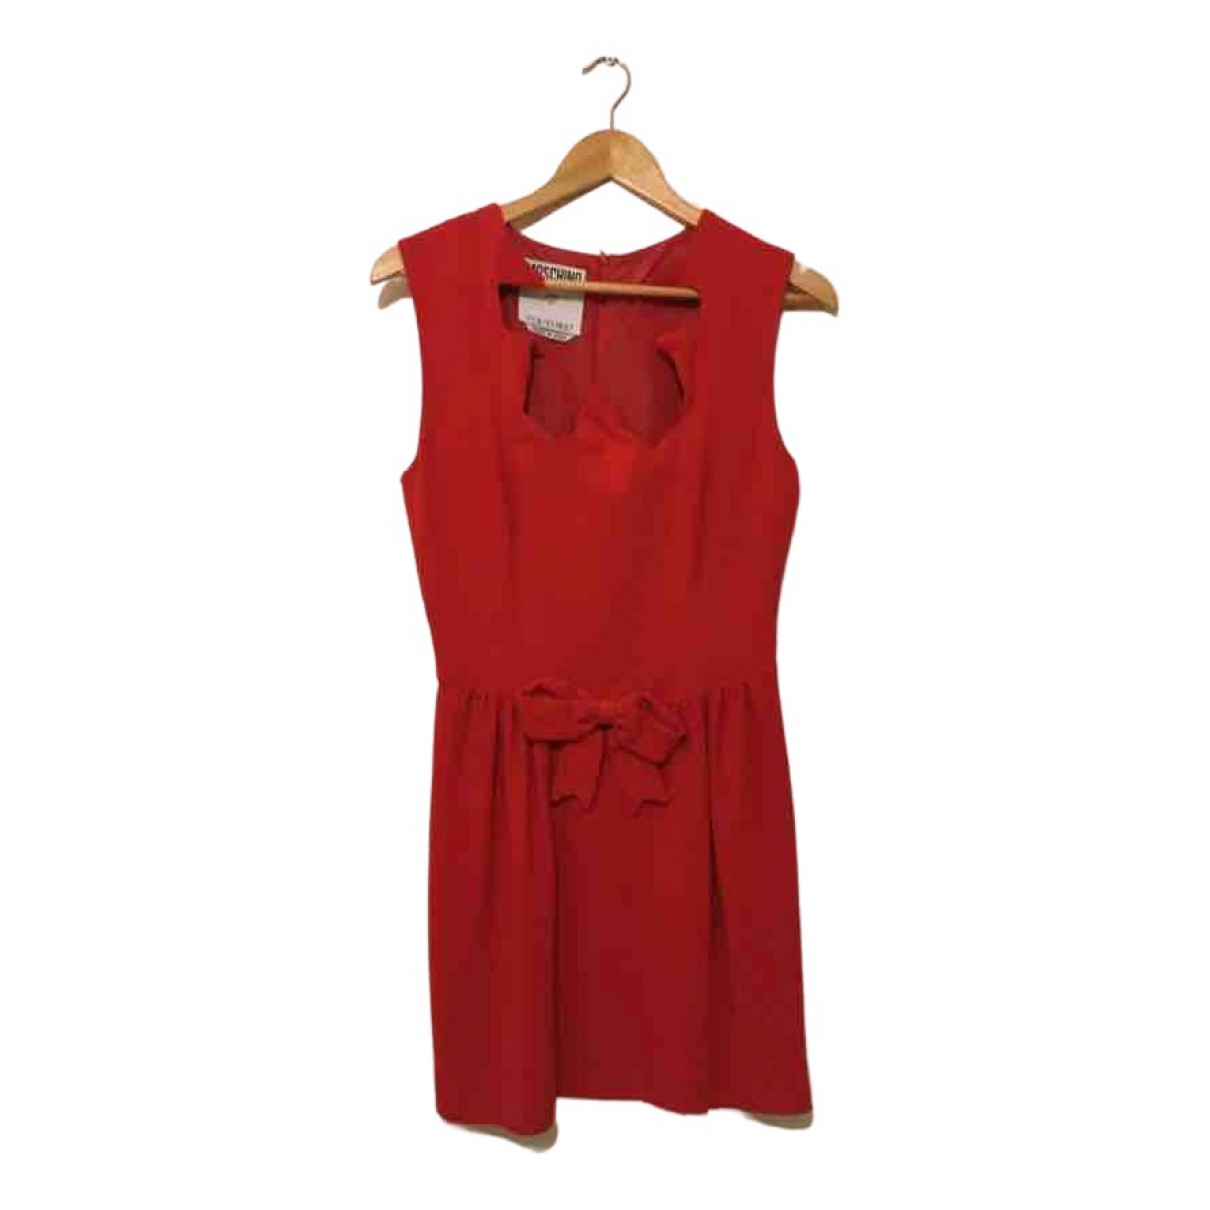 Moschino \N Red dress for Women 42 IT